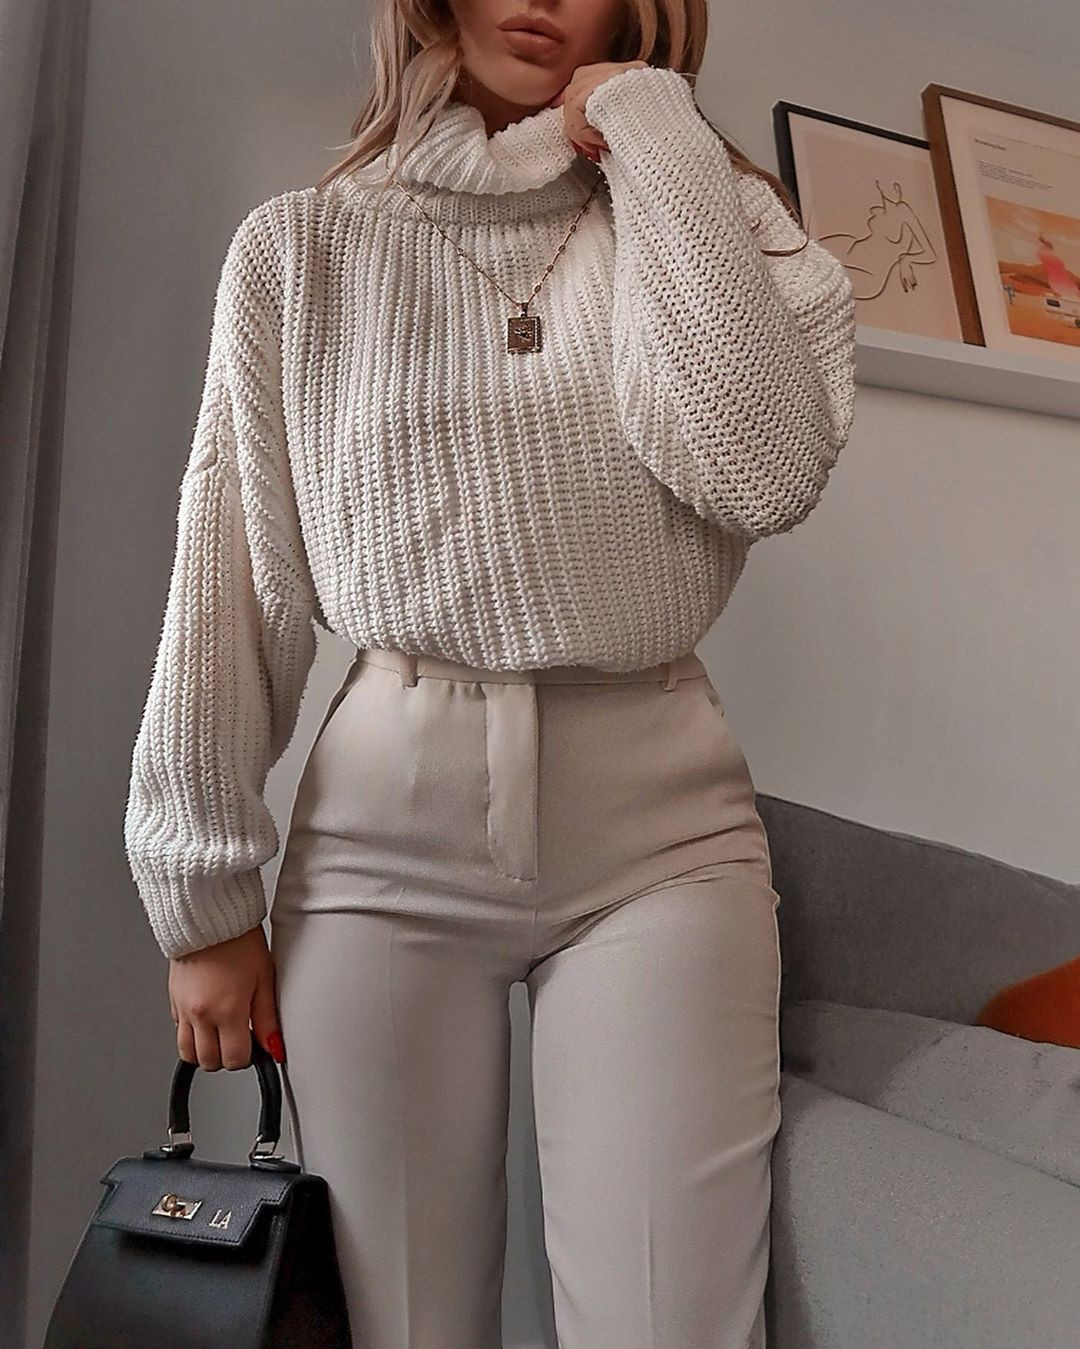 White colour outfit with sweater, jeans, skirt